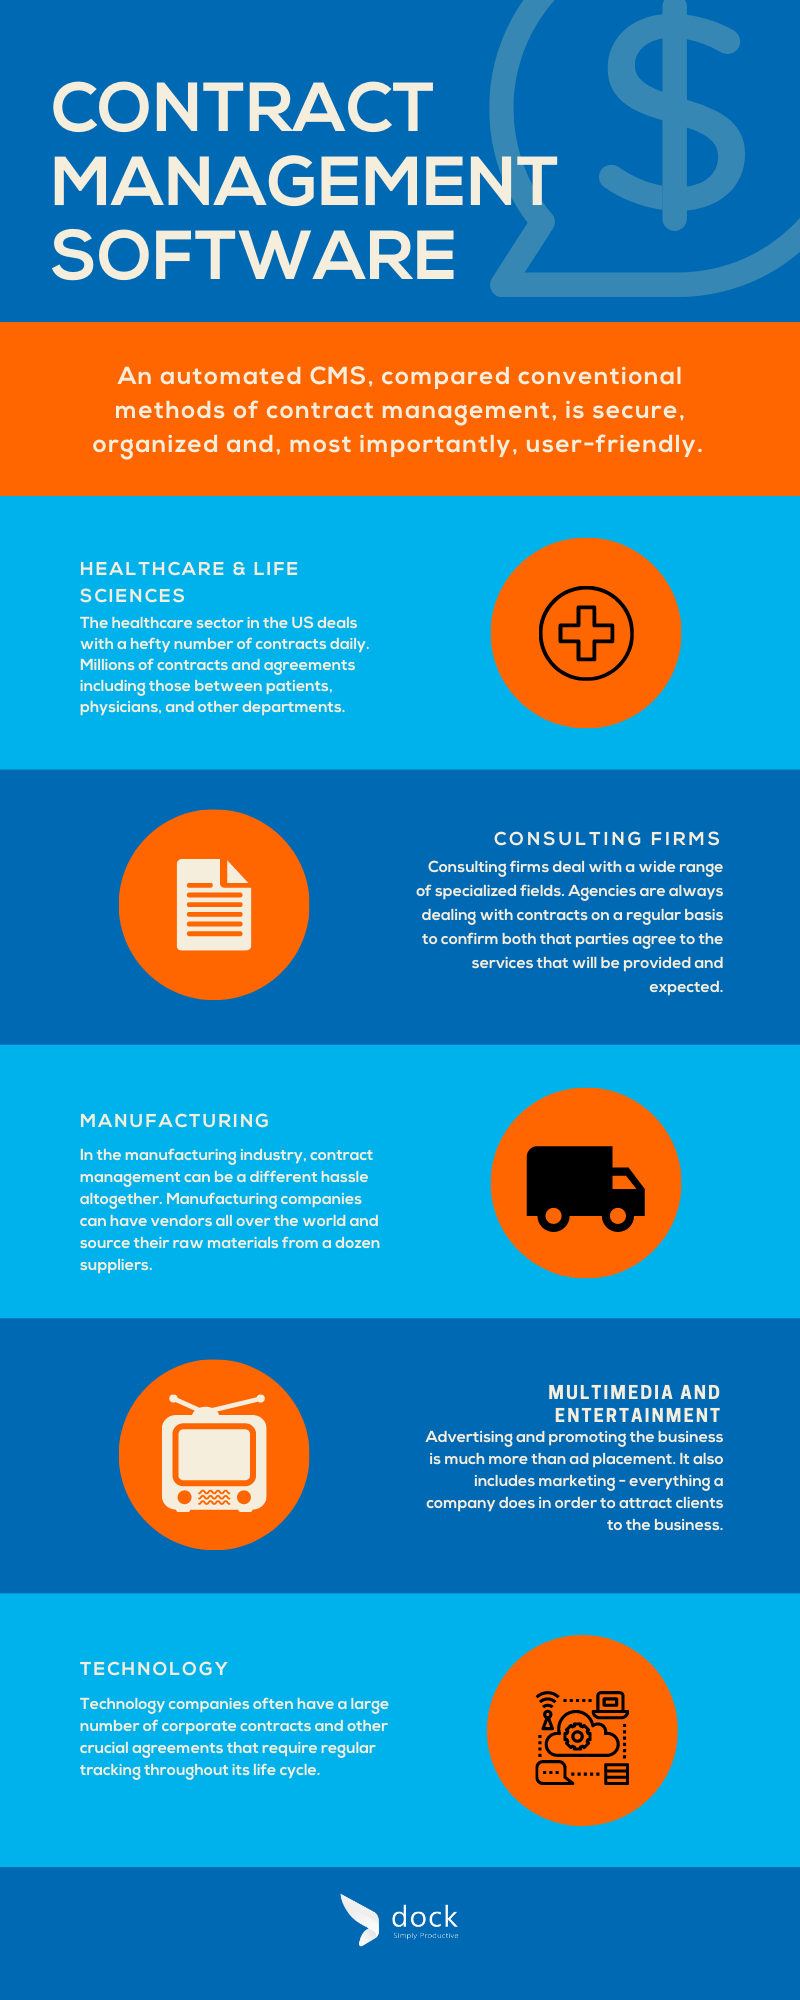 contract management software industries benefit